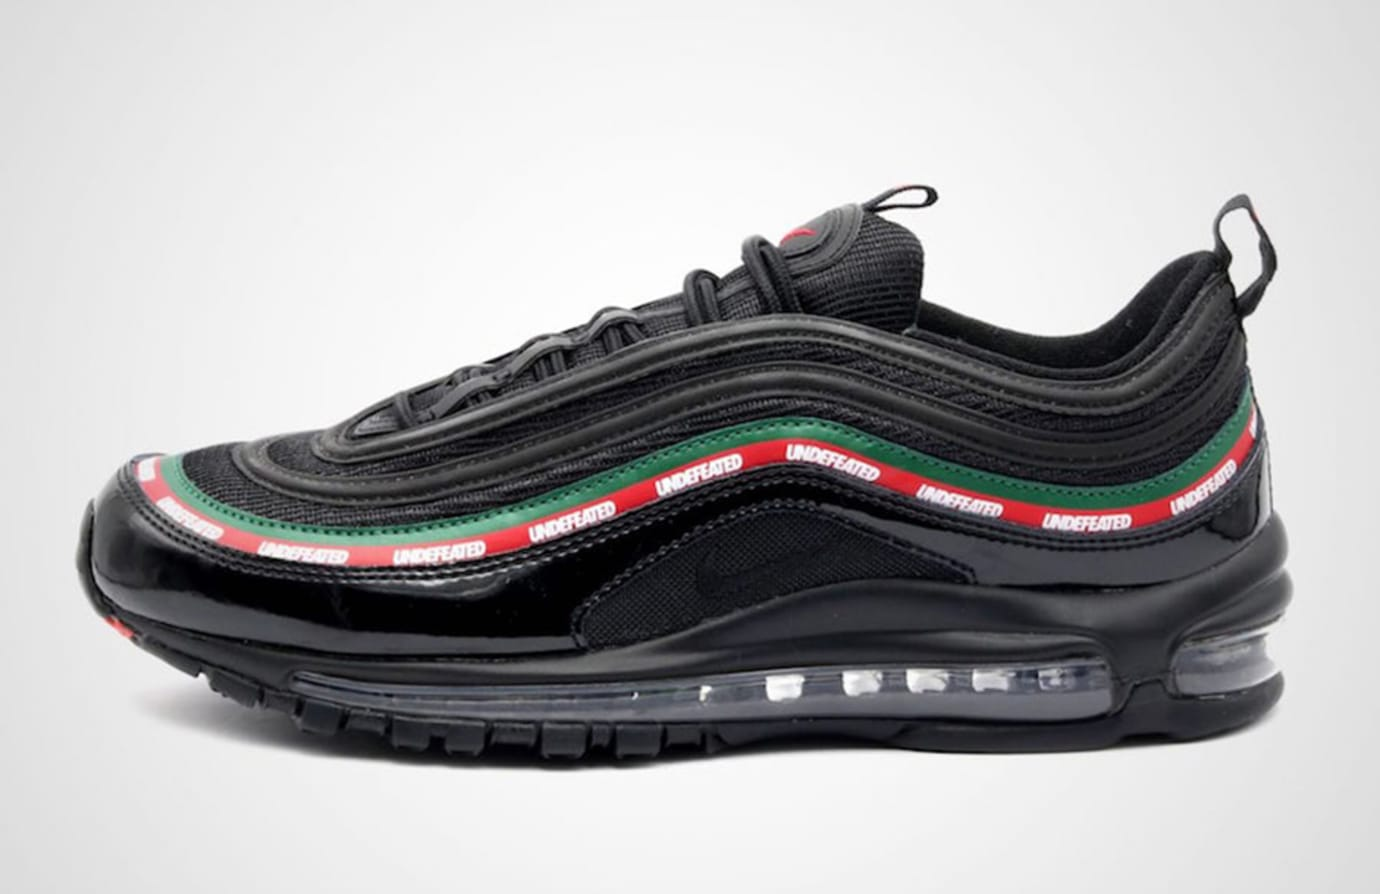 Undefeated Nike Air Max 97 AJ1986-001 Profile